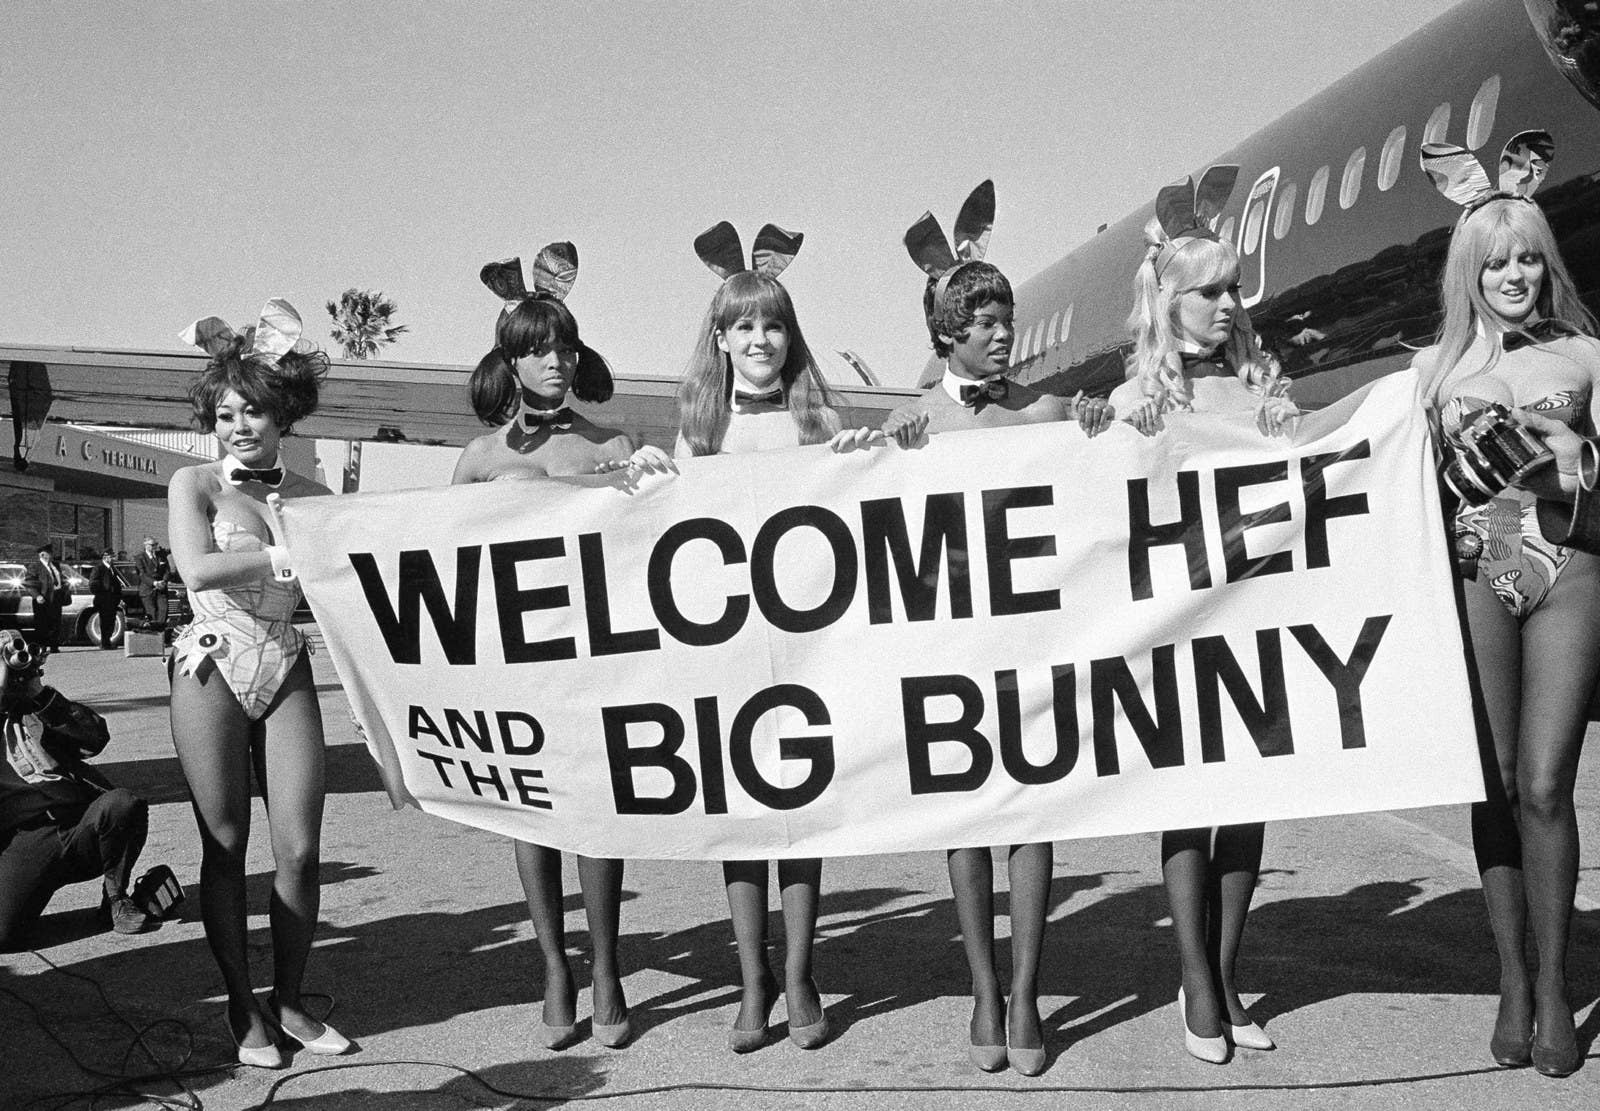 Playboy Bunnies welcome Hugh Hefner on the inaugural flight of his new DC-9 jetliner, The Big Bunny, on March 17, 1970.